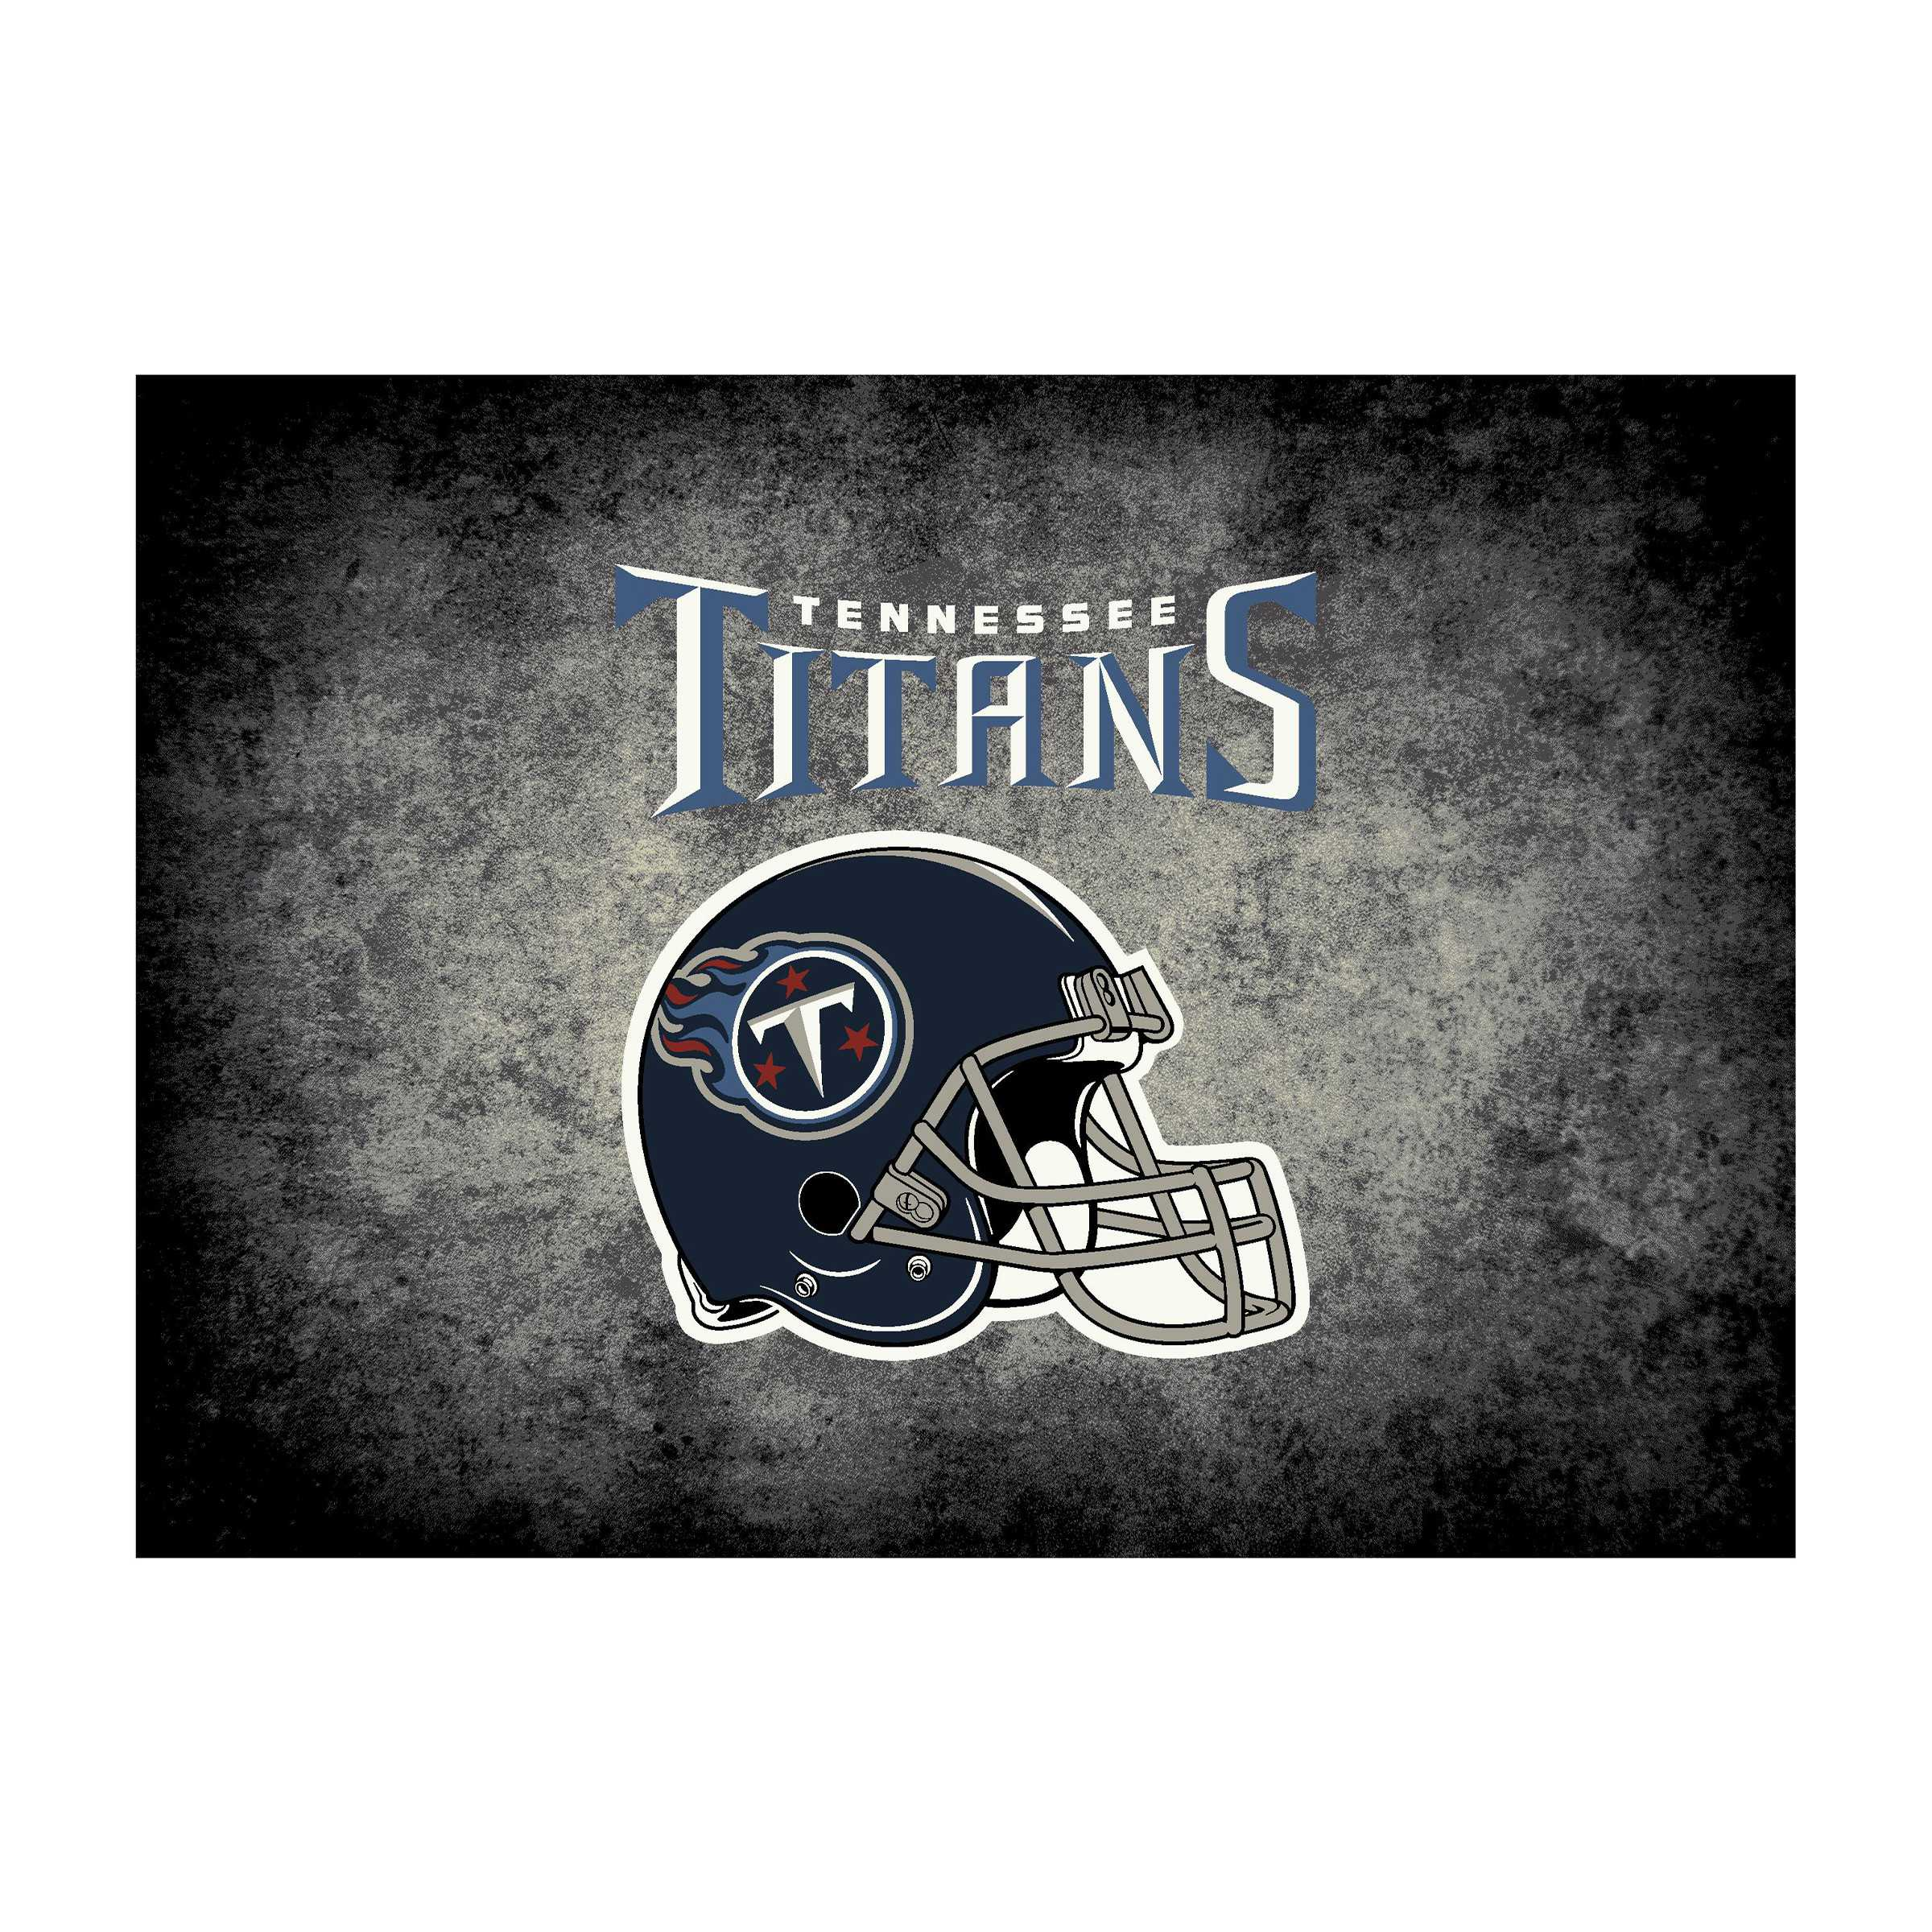 TENNESSEE TITANS 4X6 DISTRESSED RUG